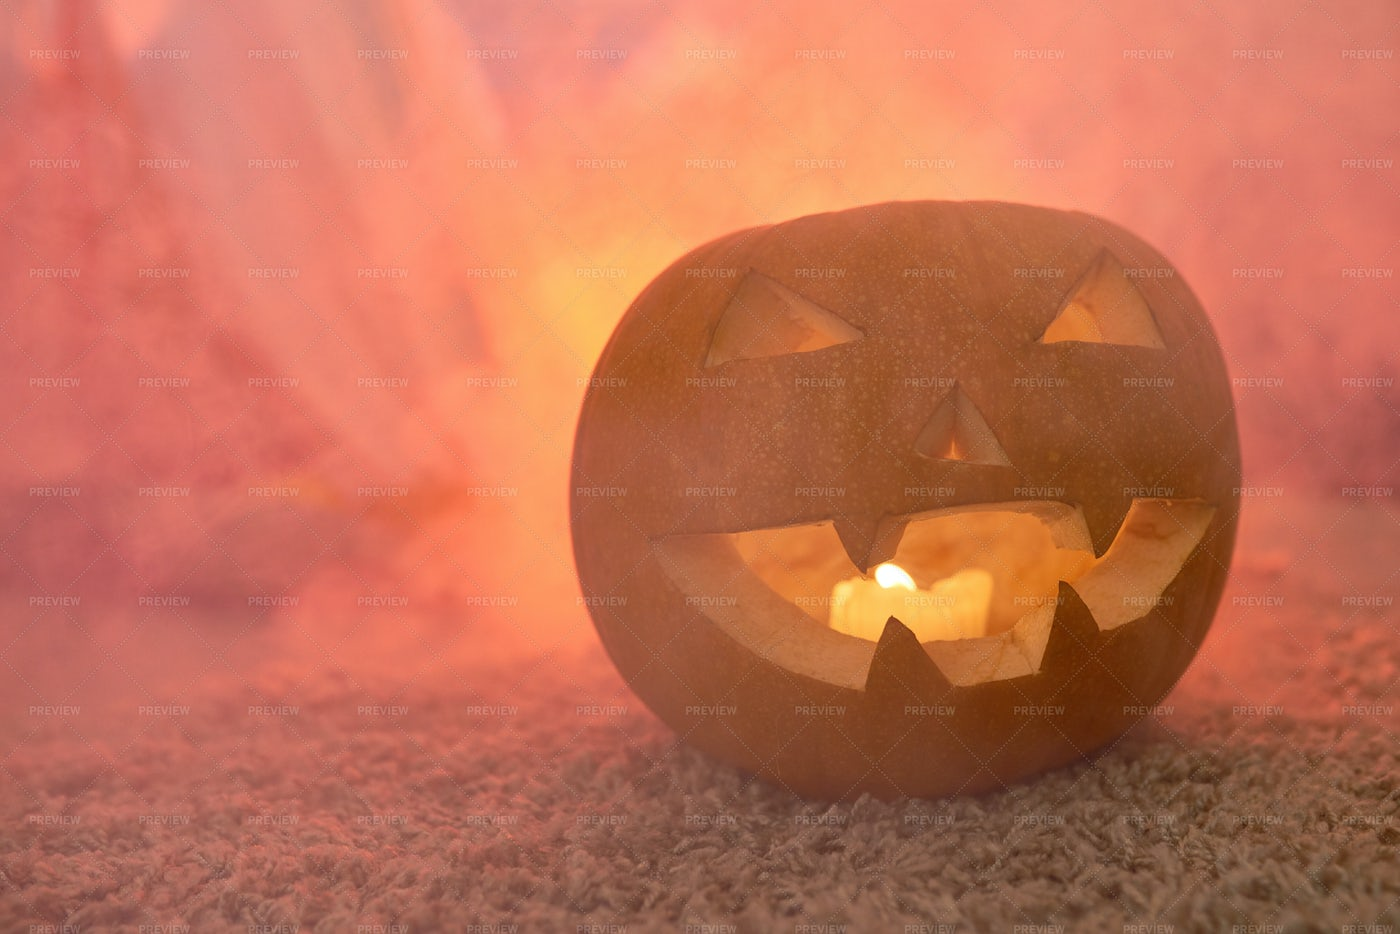 Scary Carved Pumpkin In Smoke: Stock Photos